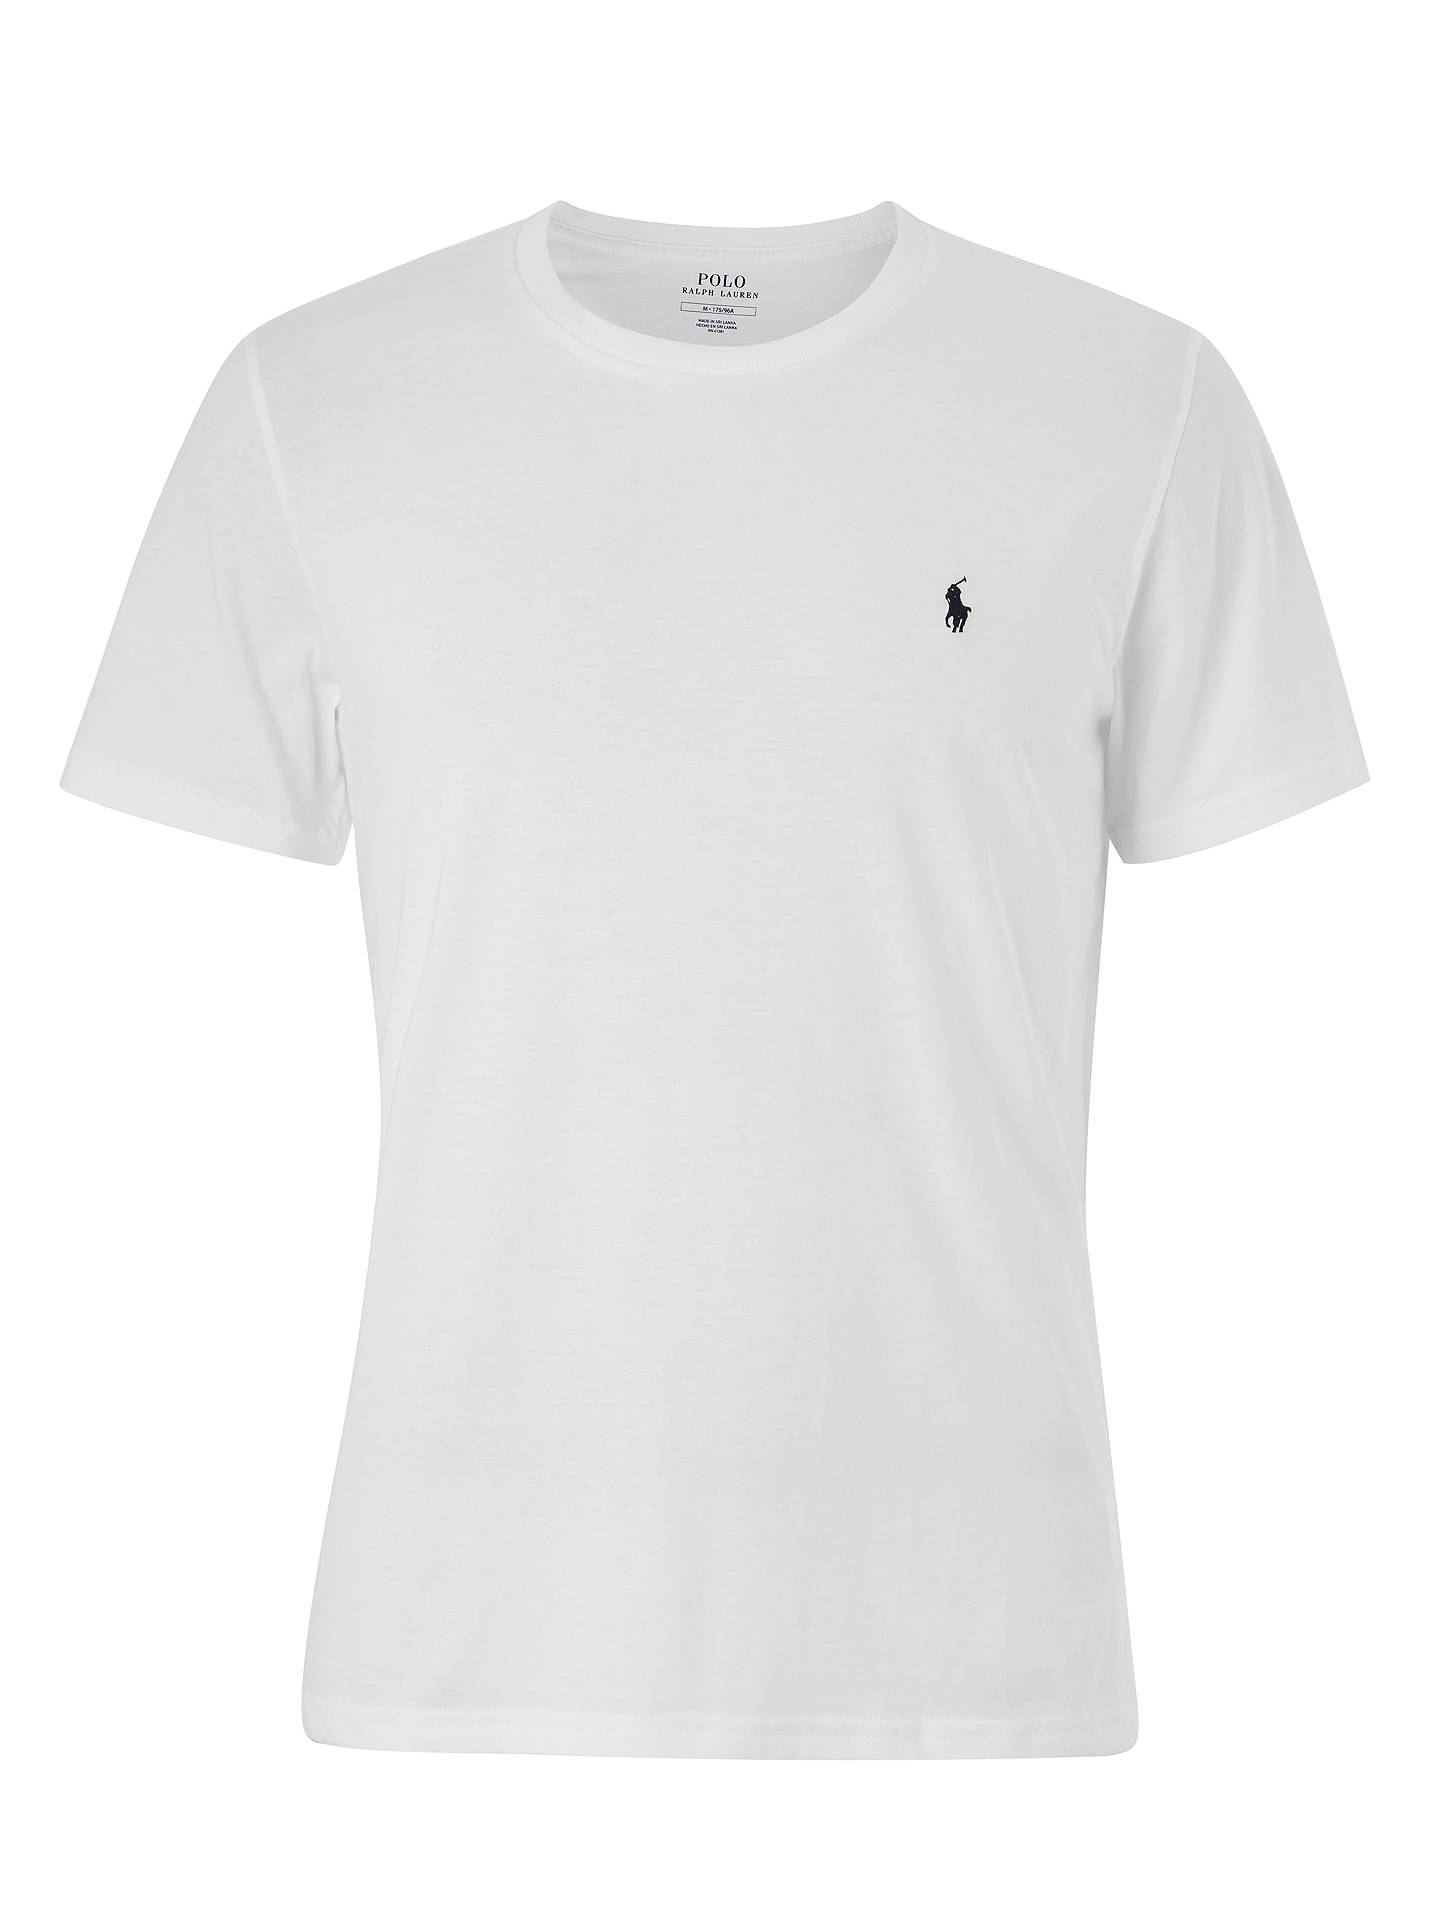 BuyPolo Ralph Lauren Liquid Cotton T-Shirt, White, M Online at johnlewis.com